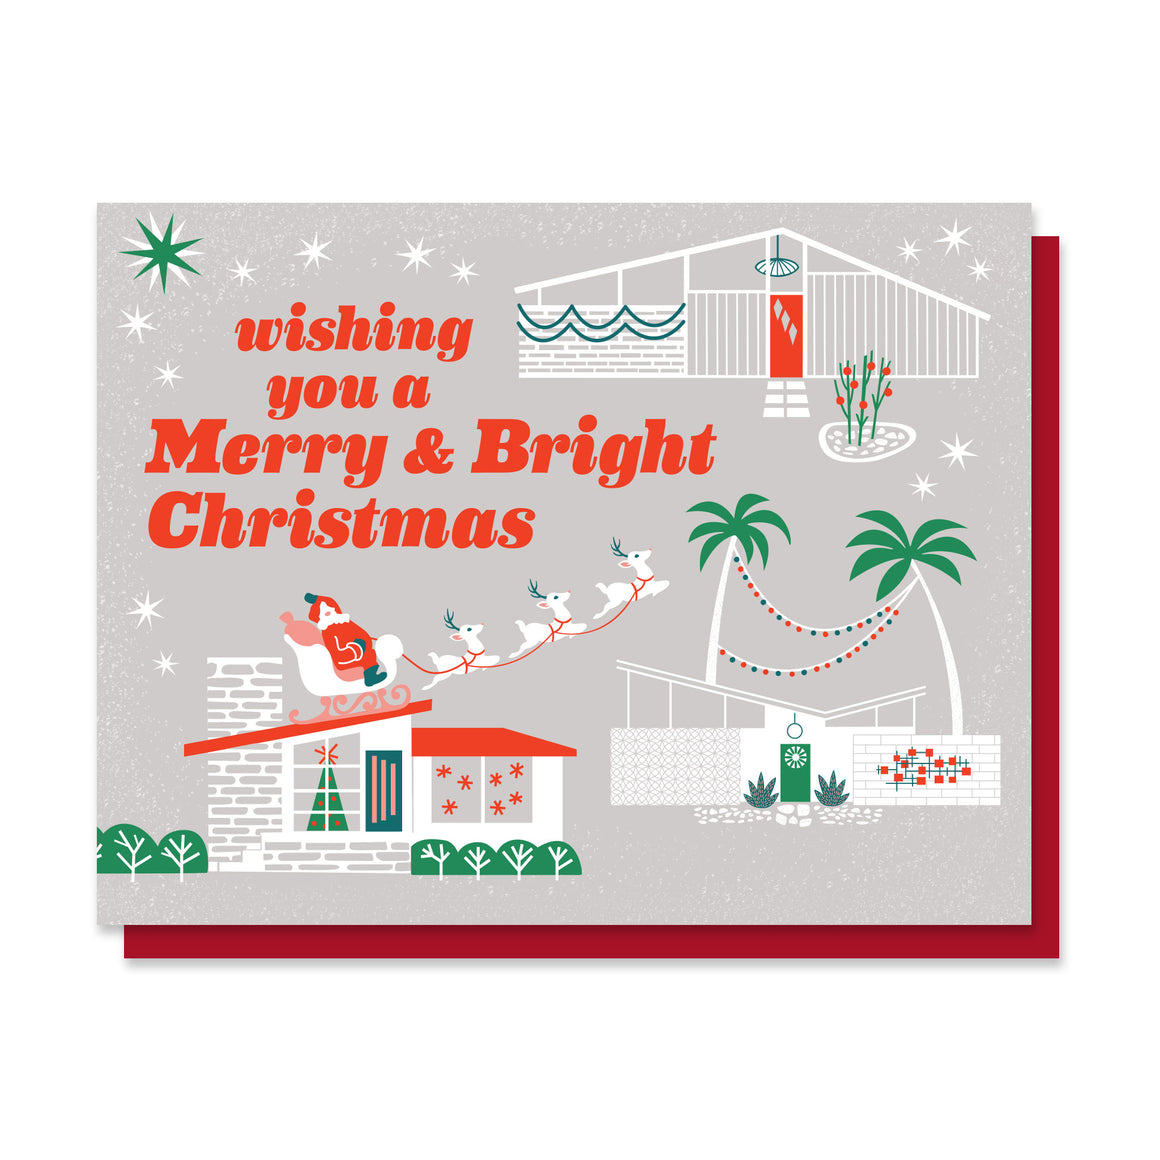 Paper Parasol Press - Merry & Bright Mid-Century Christmas Card